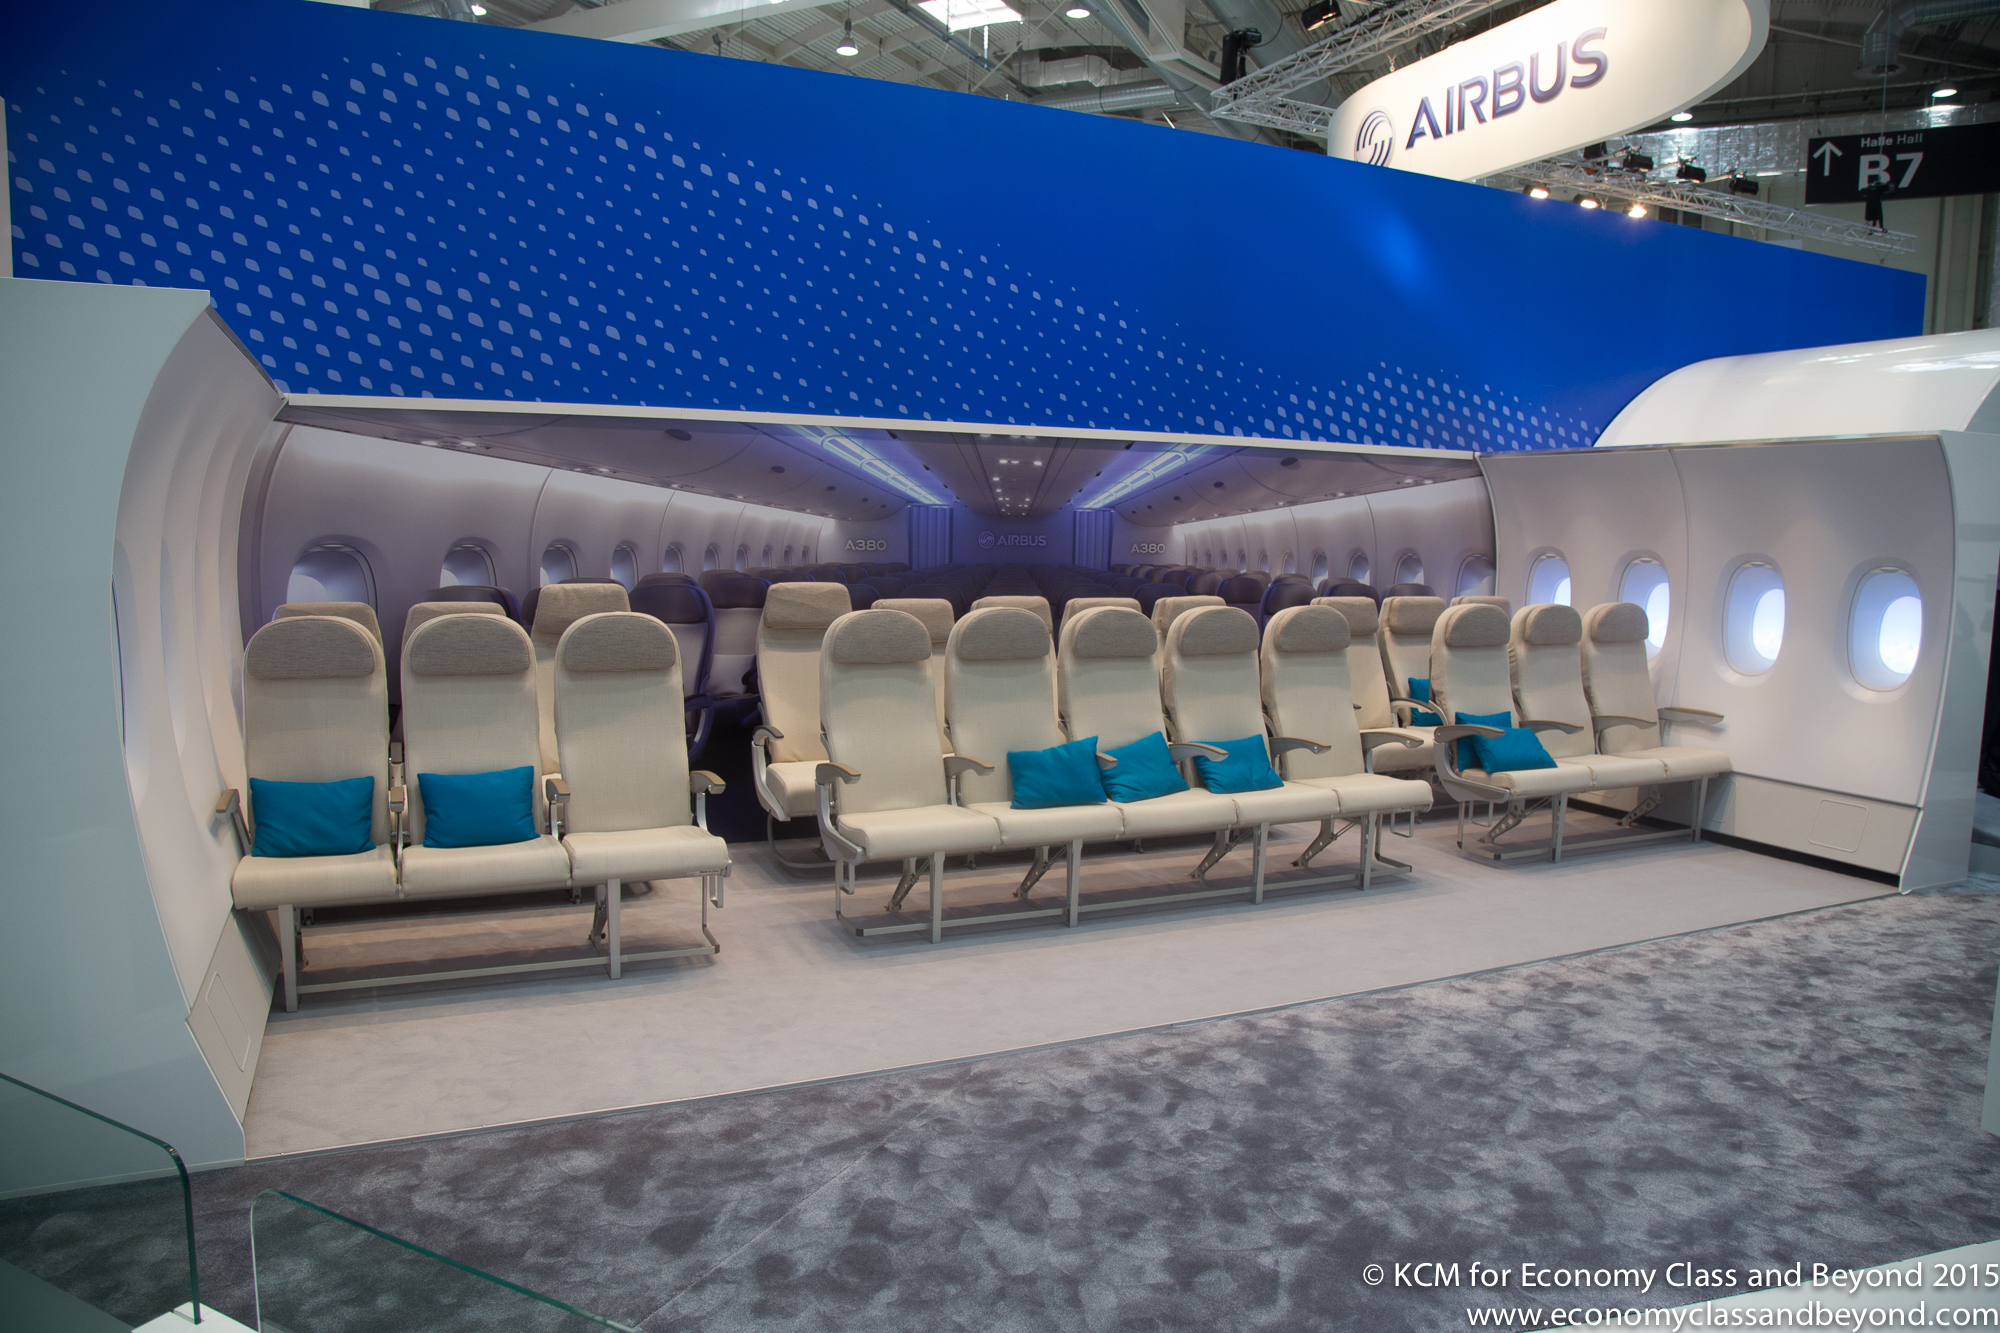 Interieur Airbus A380 The 11 Across Airbus A380 Seating Is It That Bad